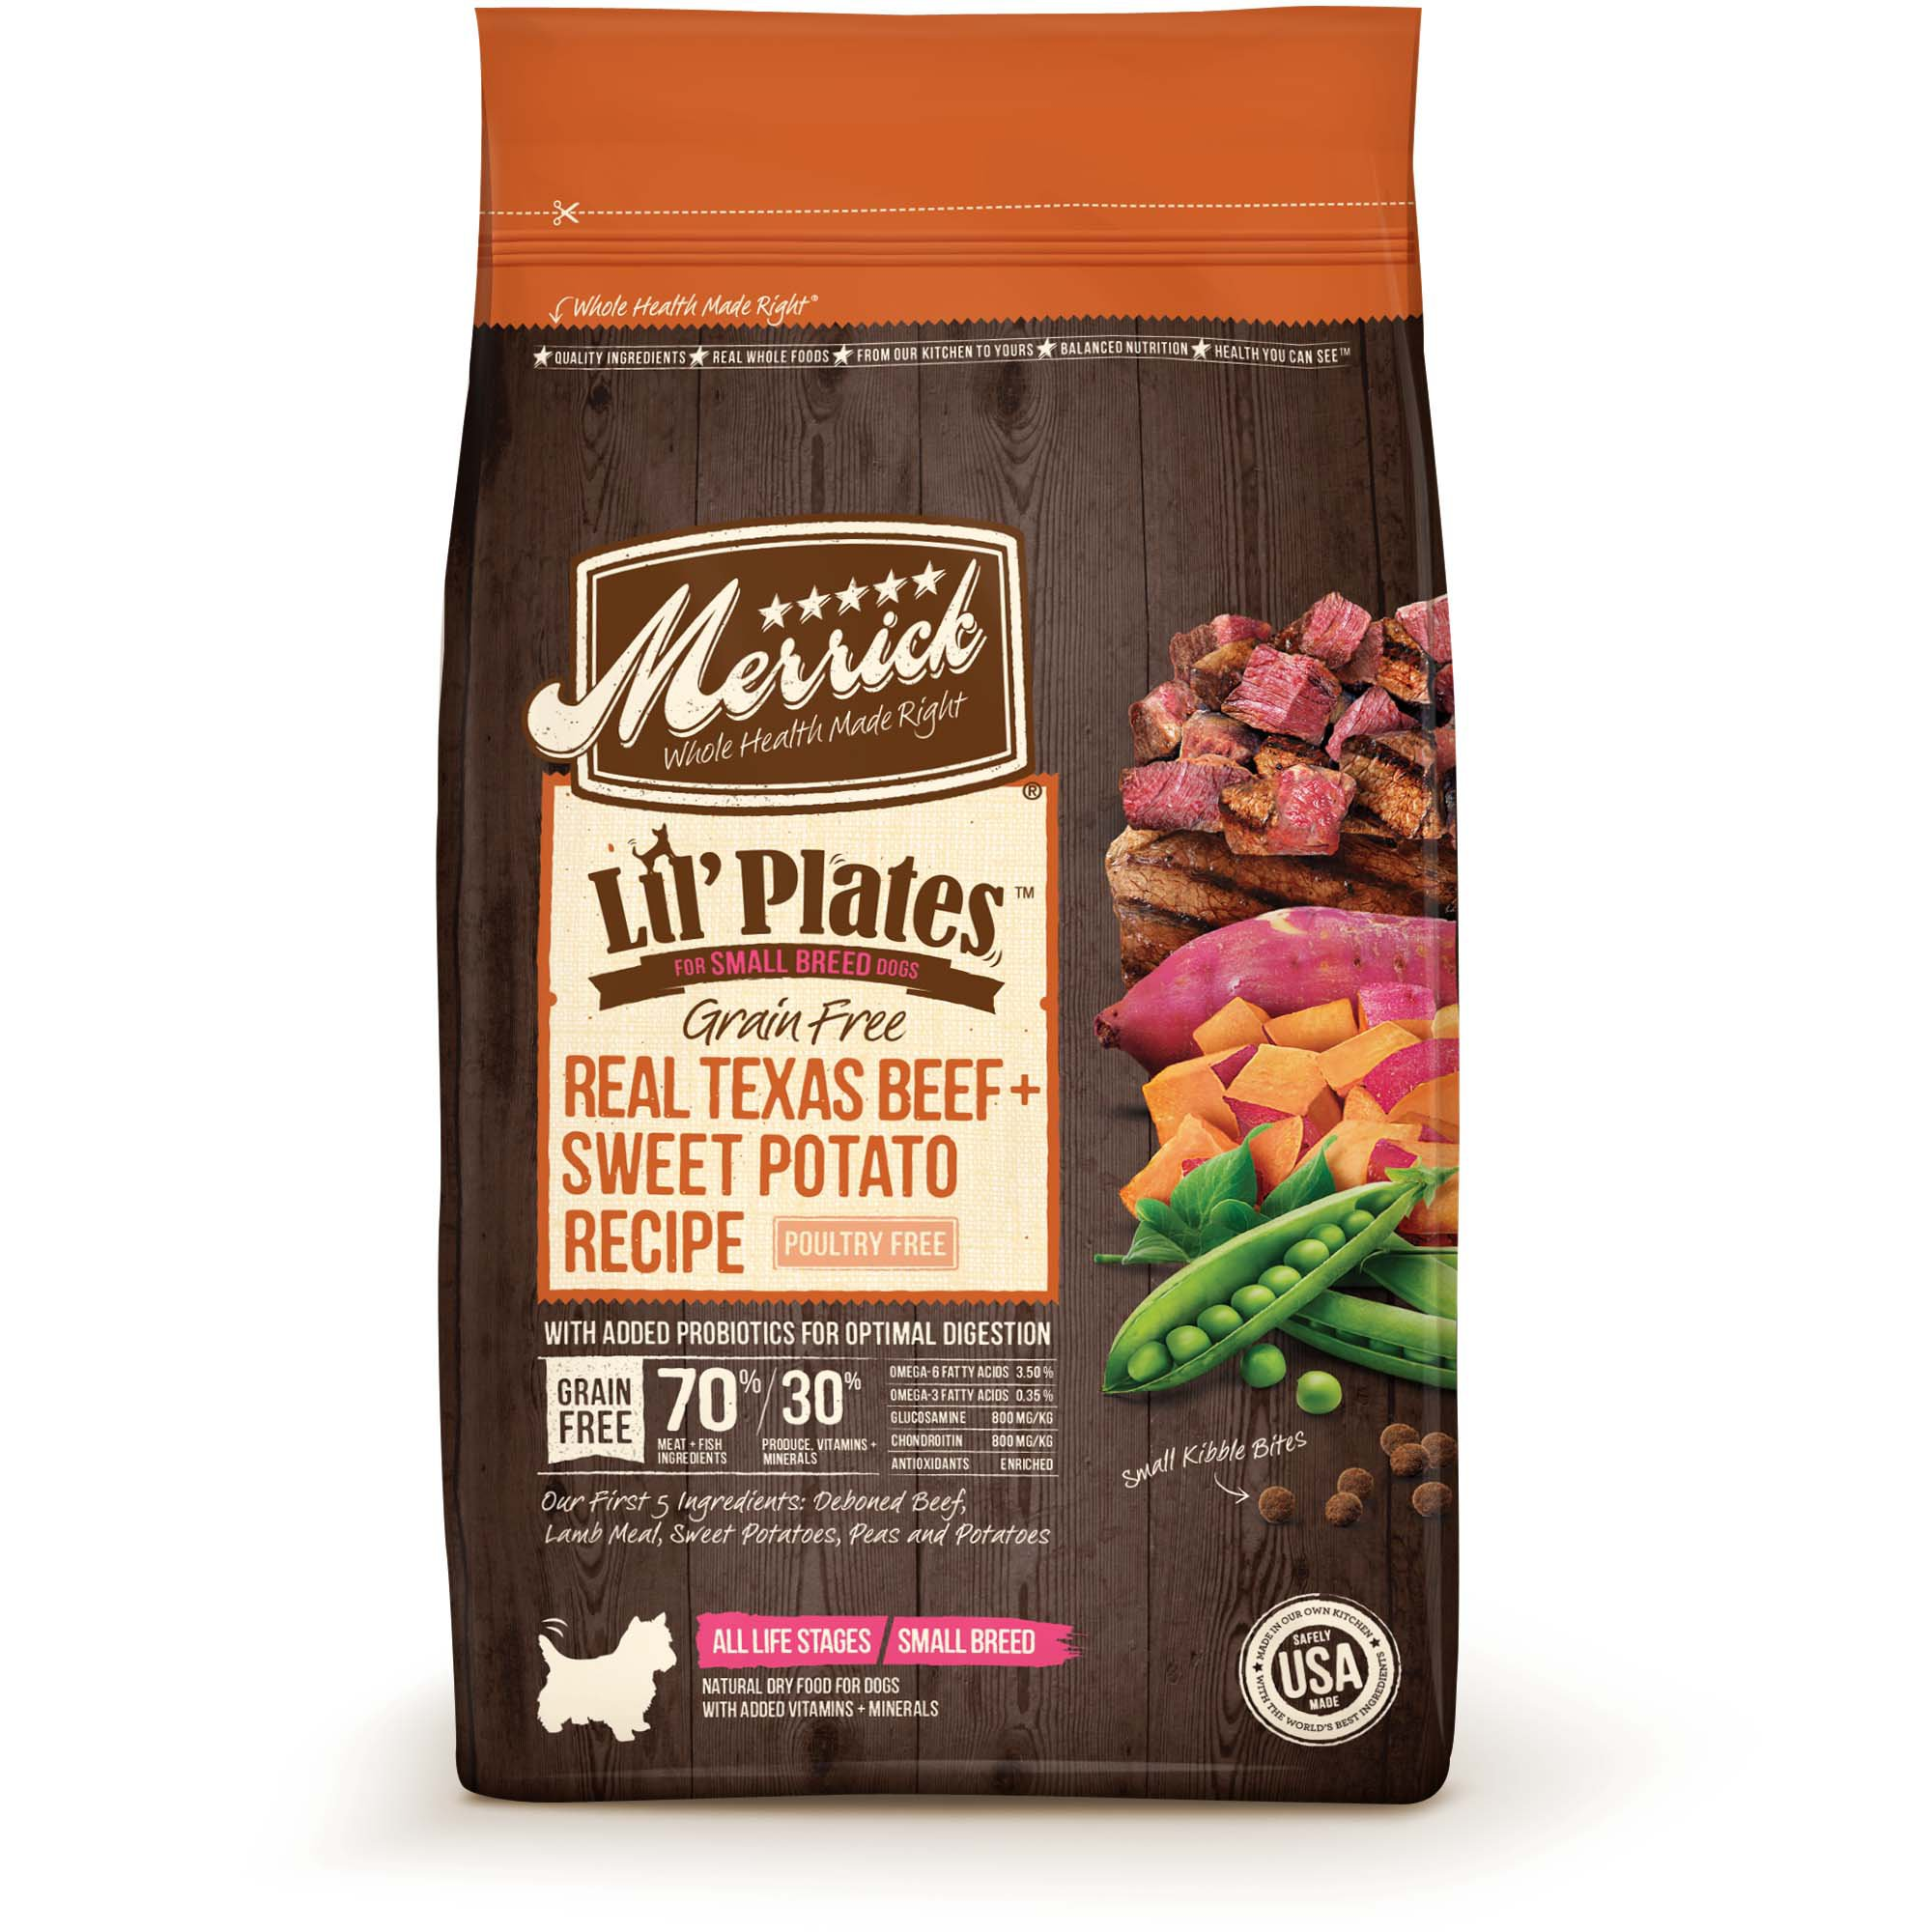 Merrick Lil' Plates Grain Free Texas Real Beef + Sweet Potato Small Breed Dry Dog Food, 12 lbs.